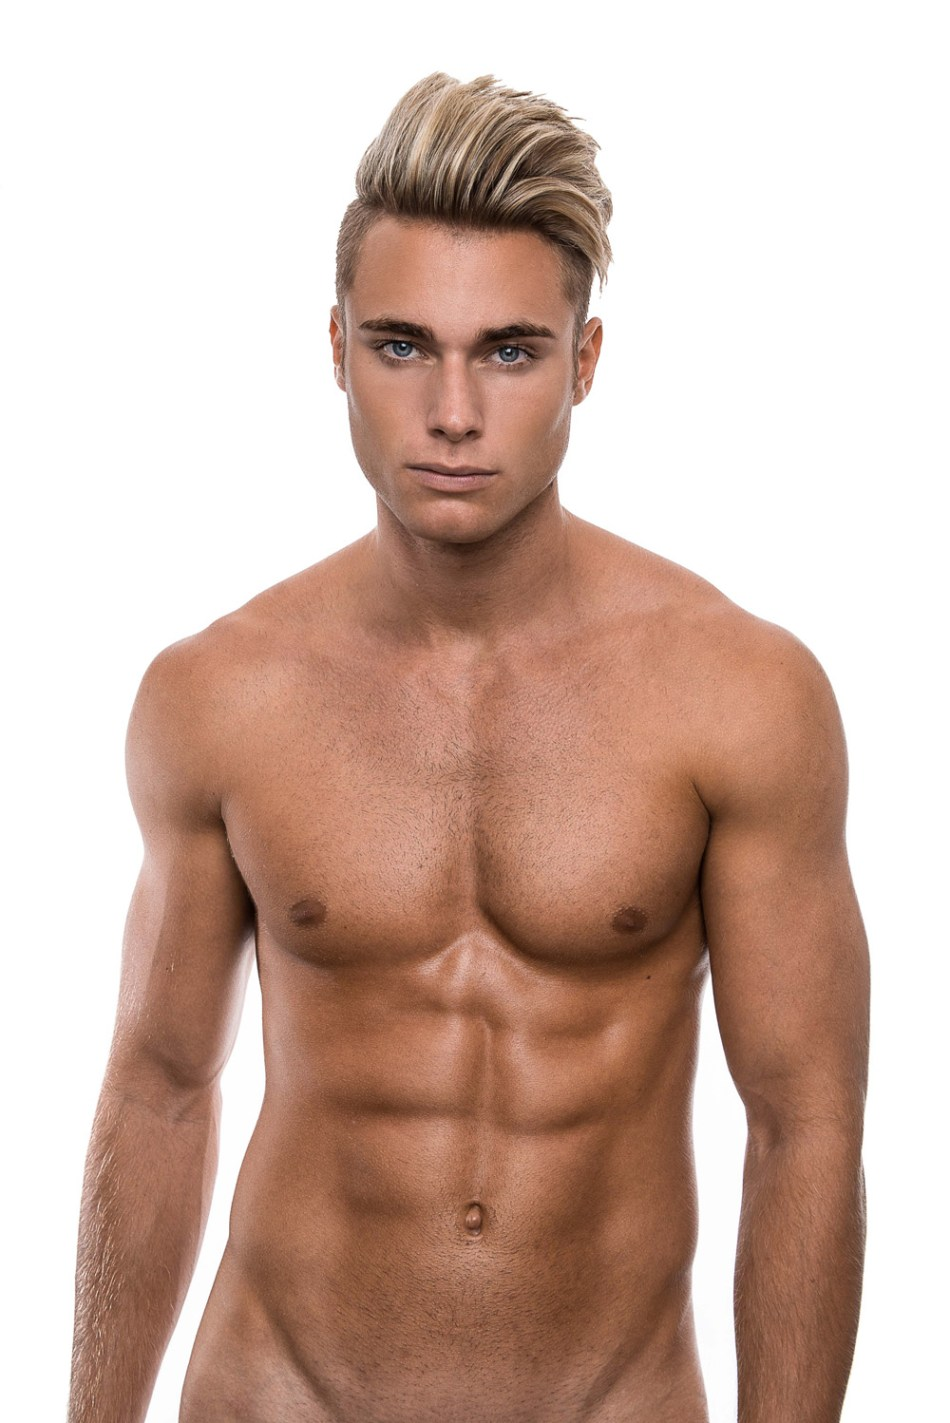 Come on and meet model Eric Hagberg he's from Front Management and this portrait was taken by Fritz Yap.